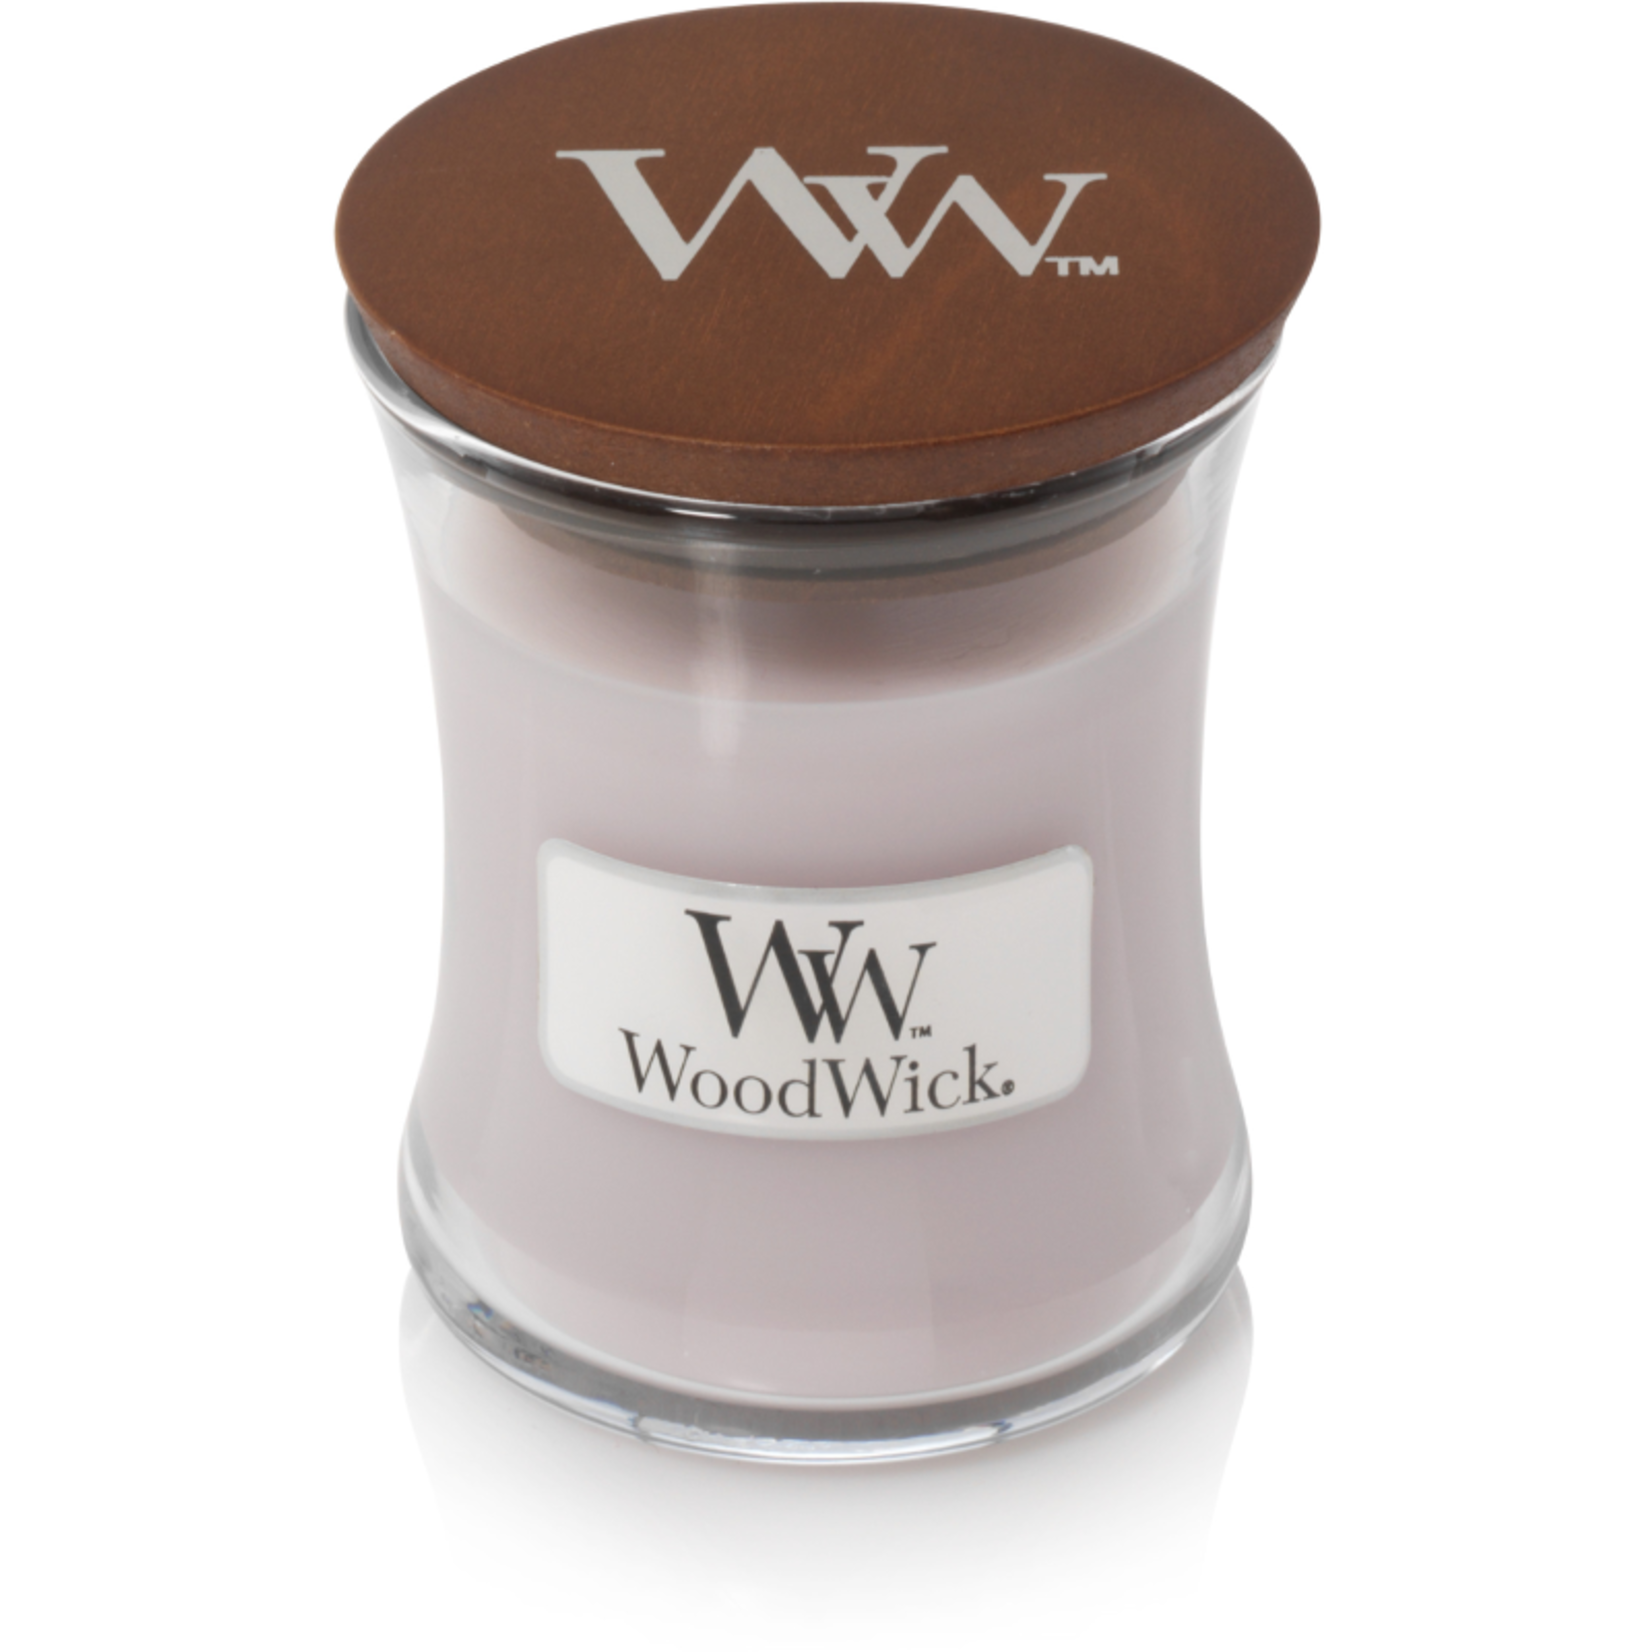 Woodwick Woodwick Wild Violet mini candle*